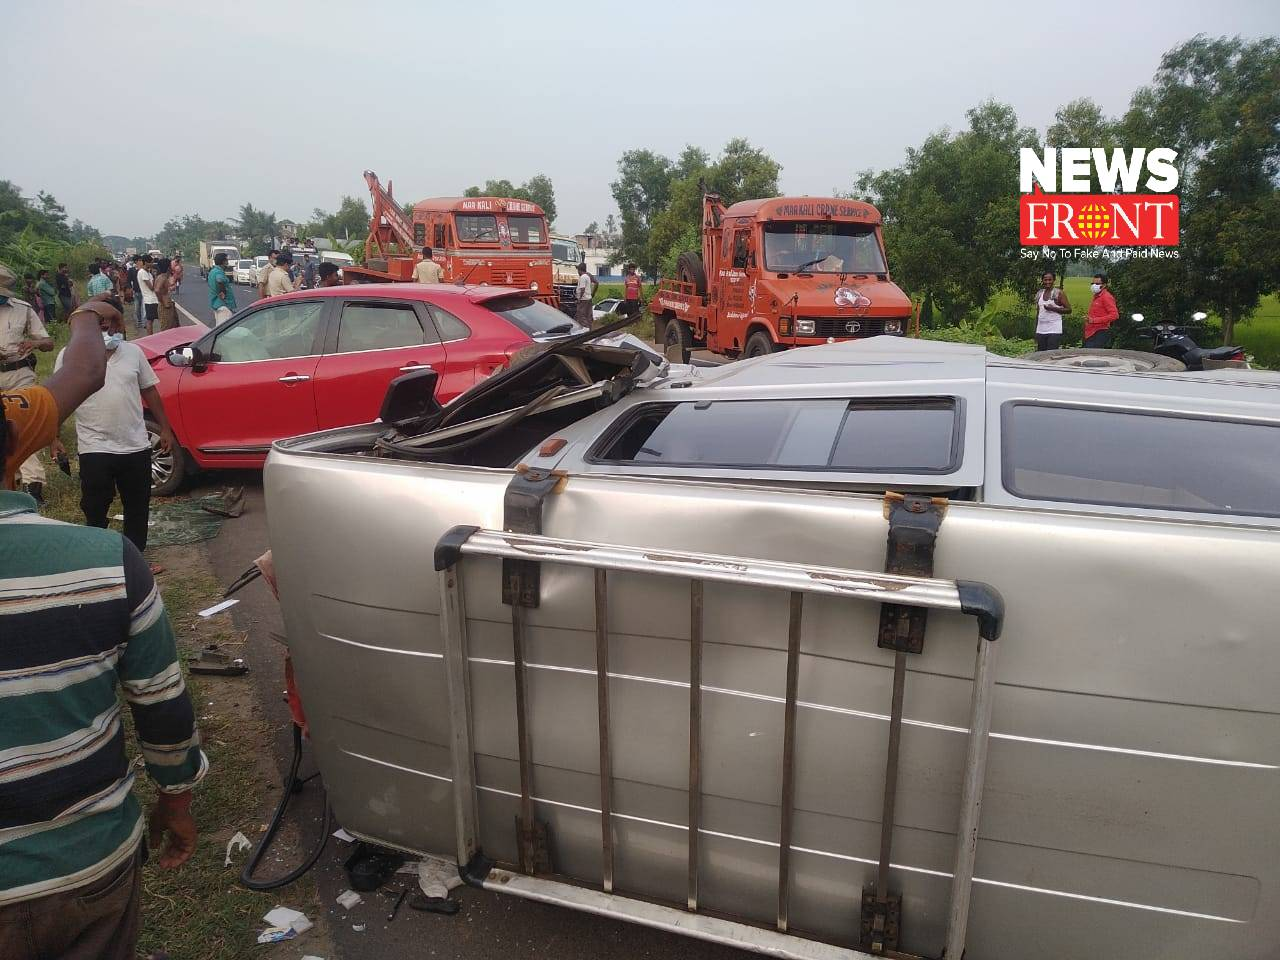 accident   newsfront.co